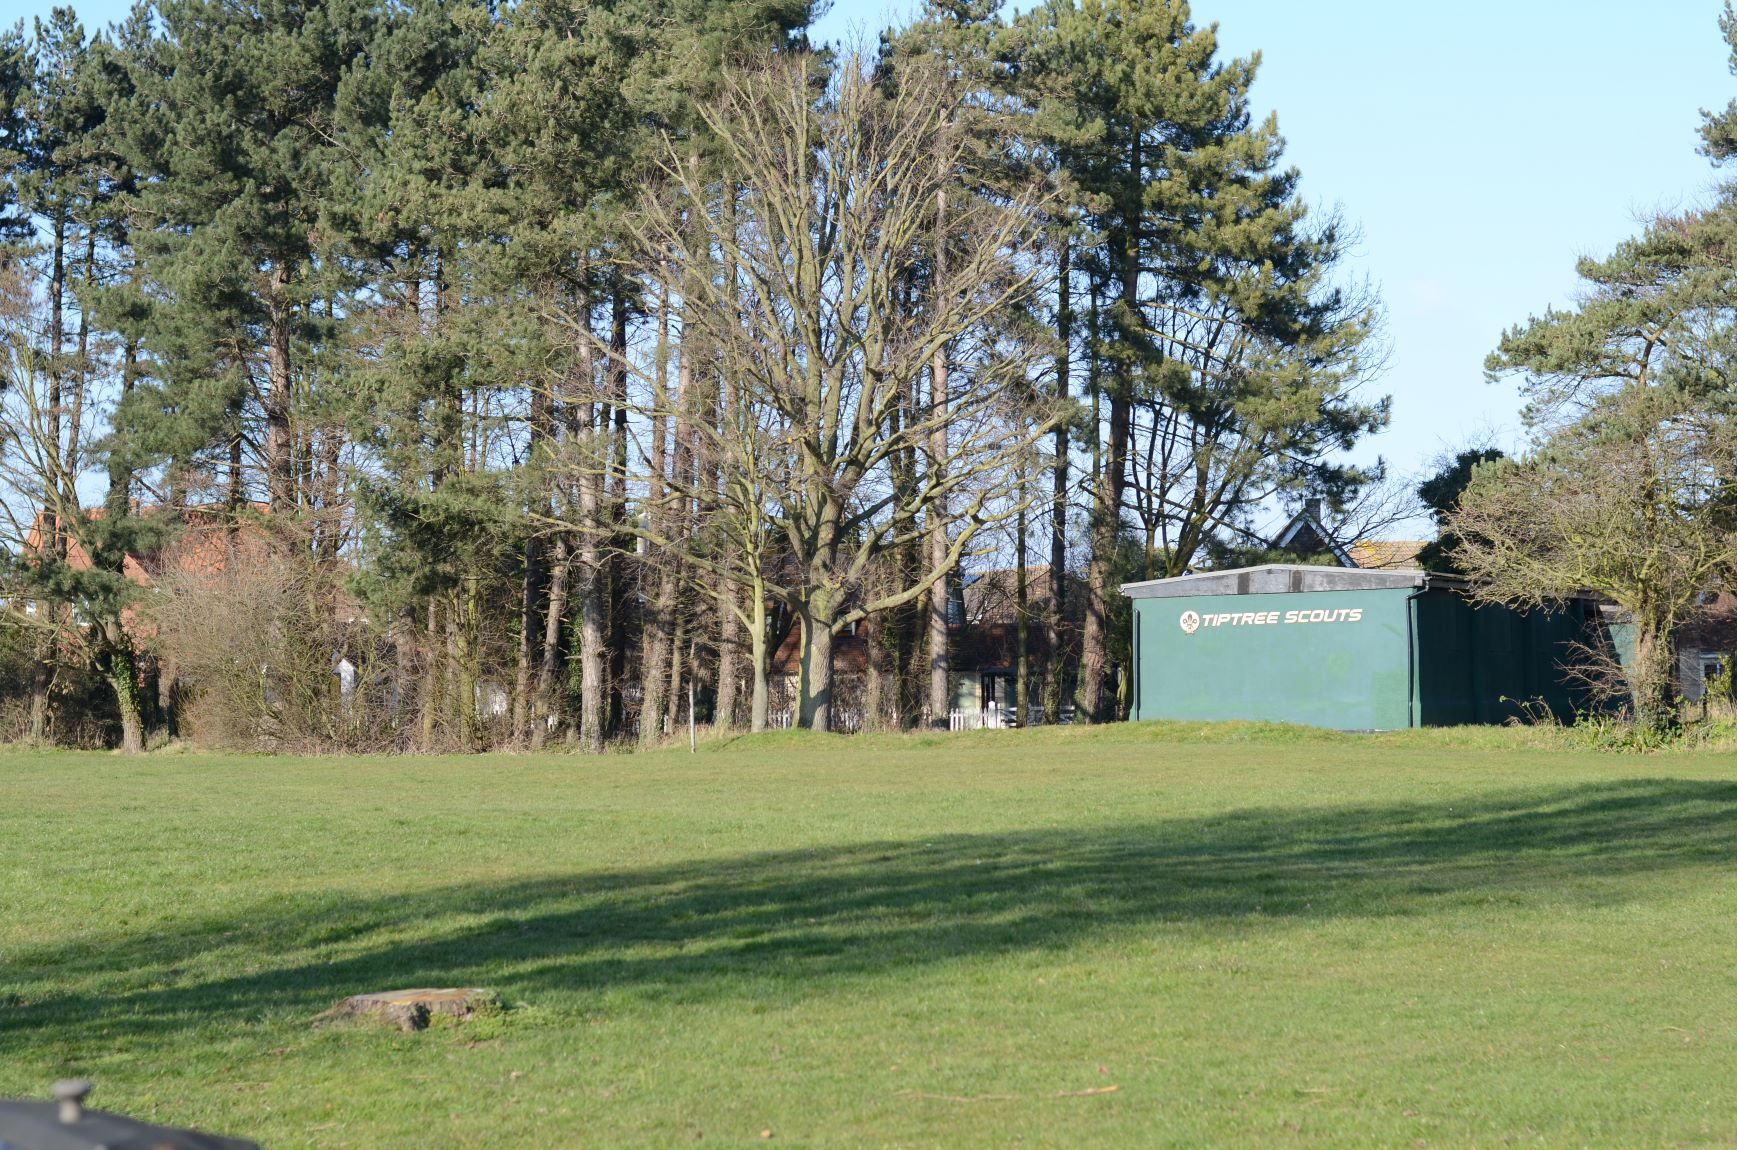 Village Green and Scout Hut